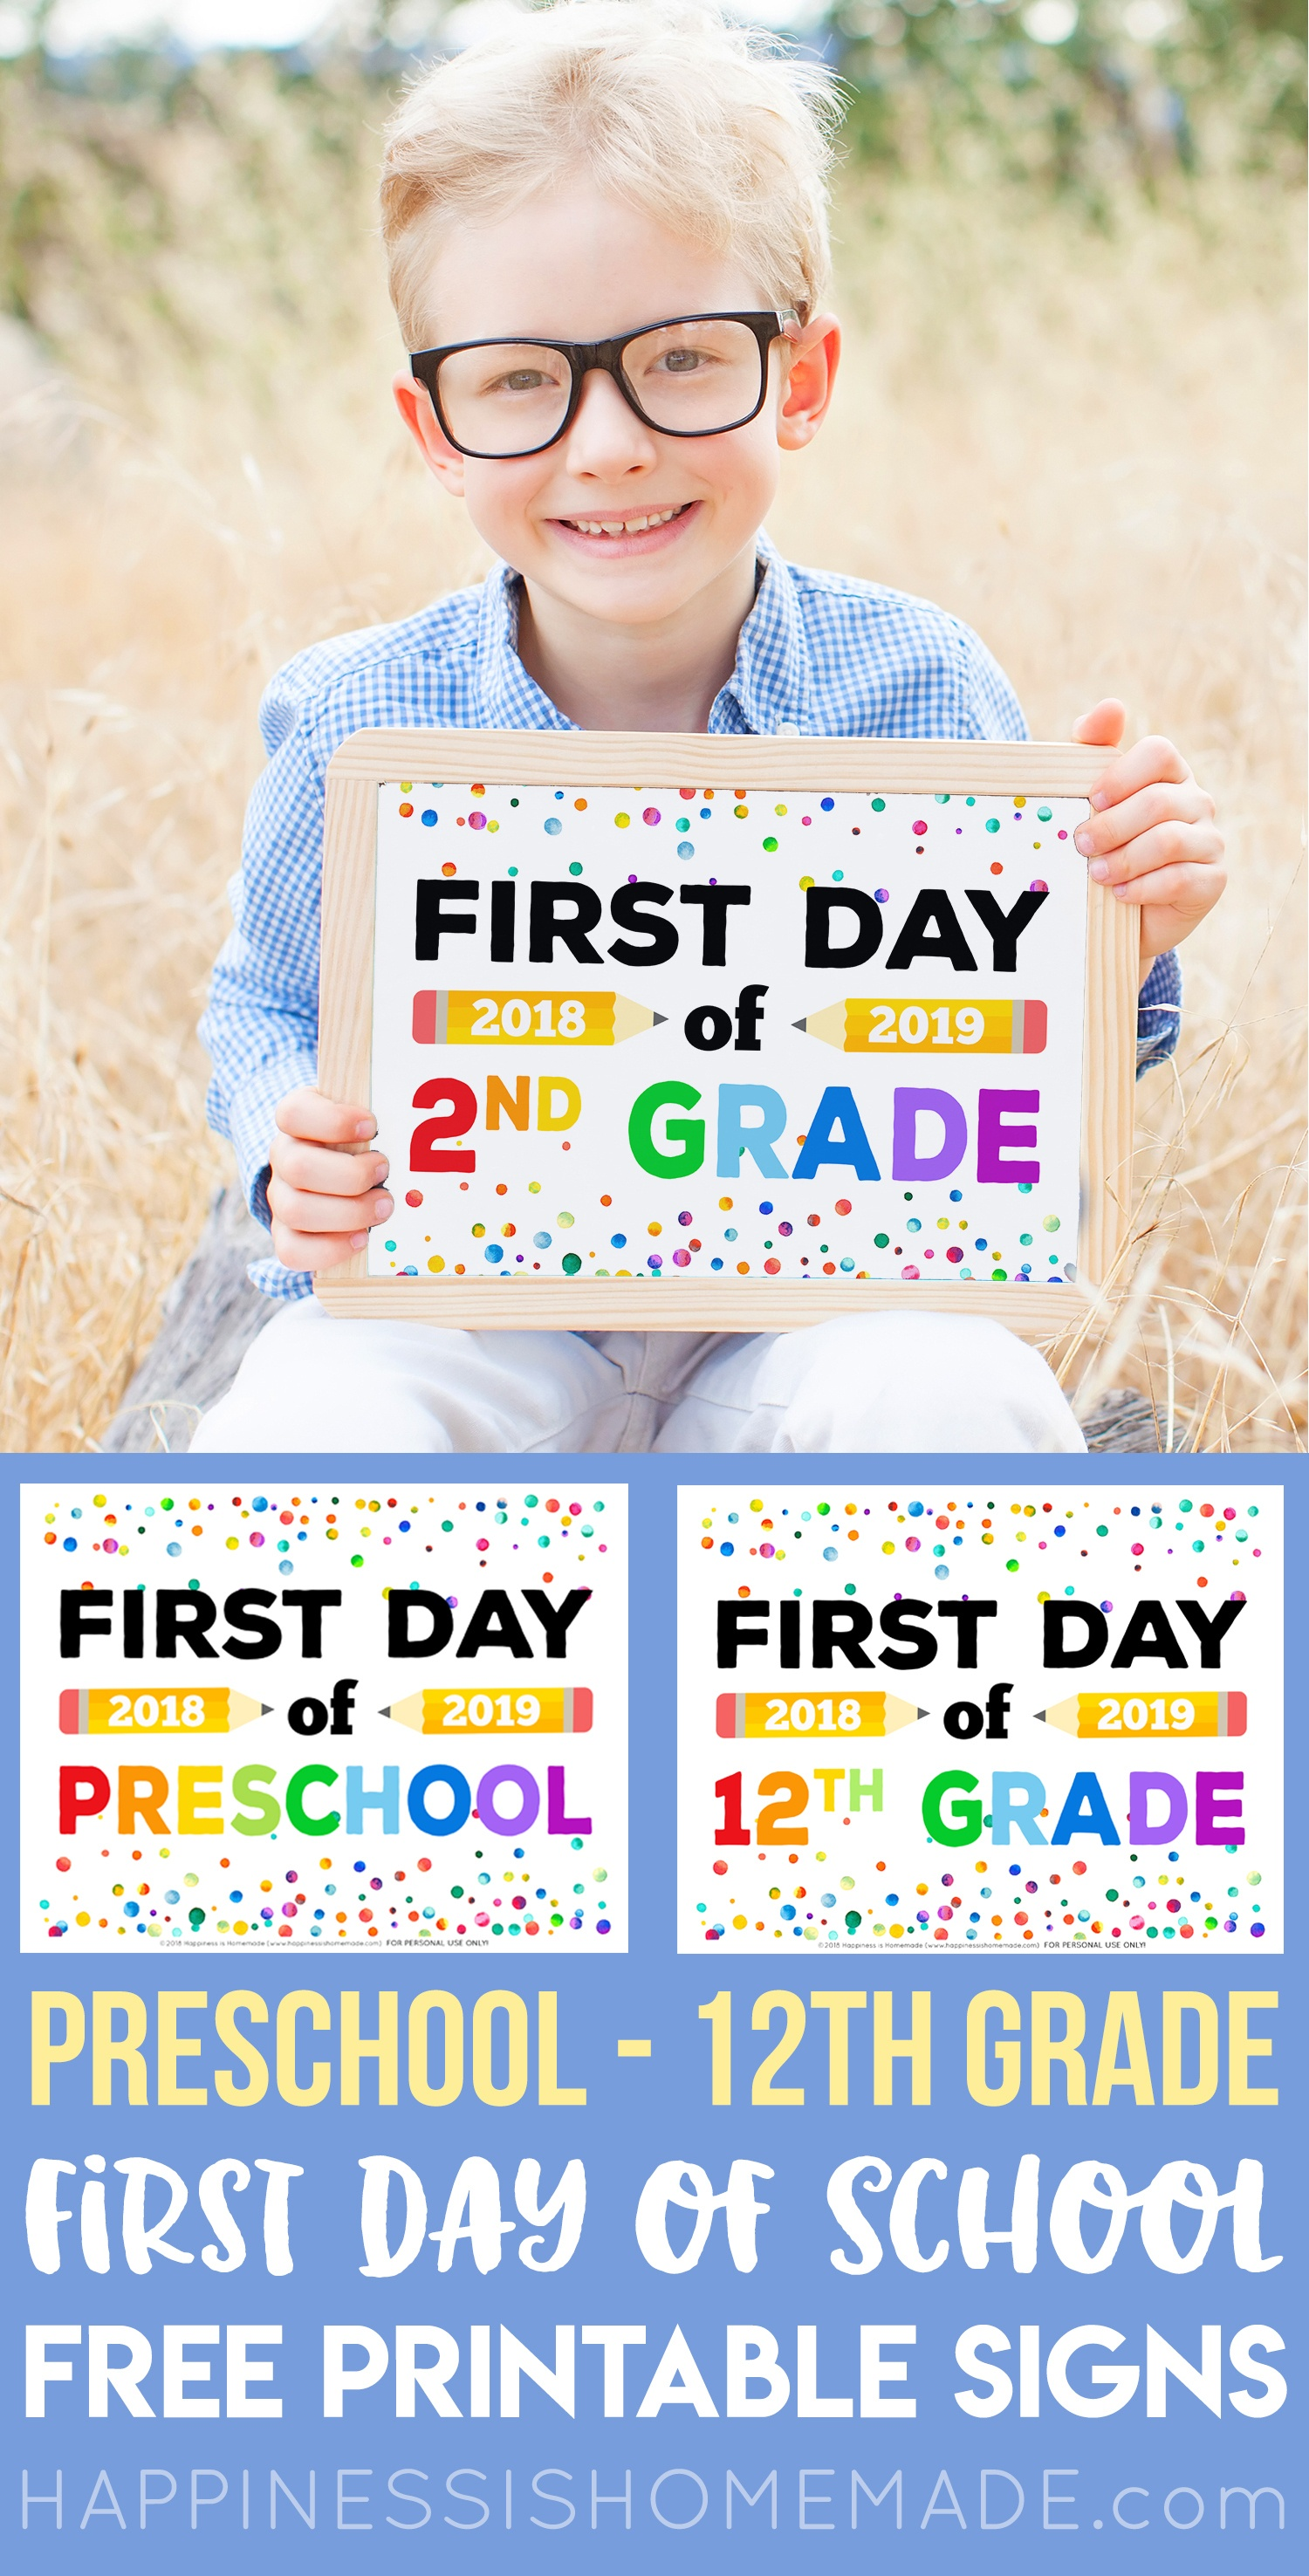 First Day Of School Signs - Free Printables - Happiness Is Homemade - Free Printable Back To School